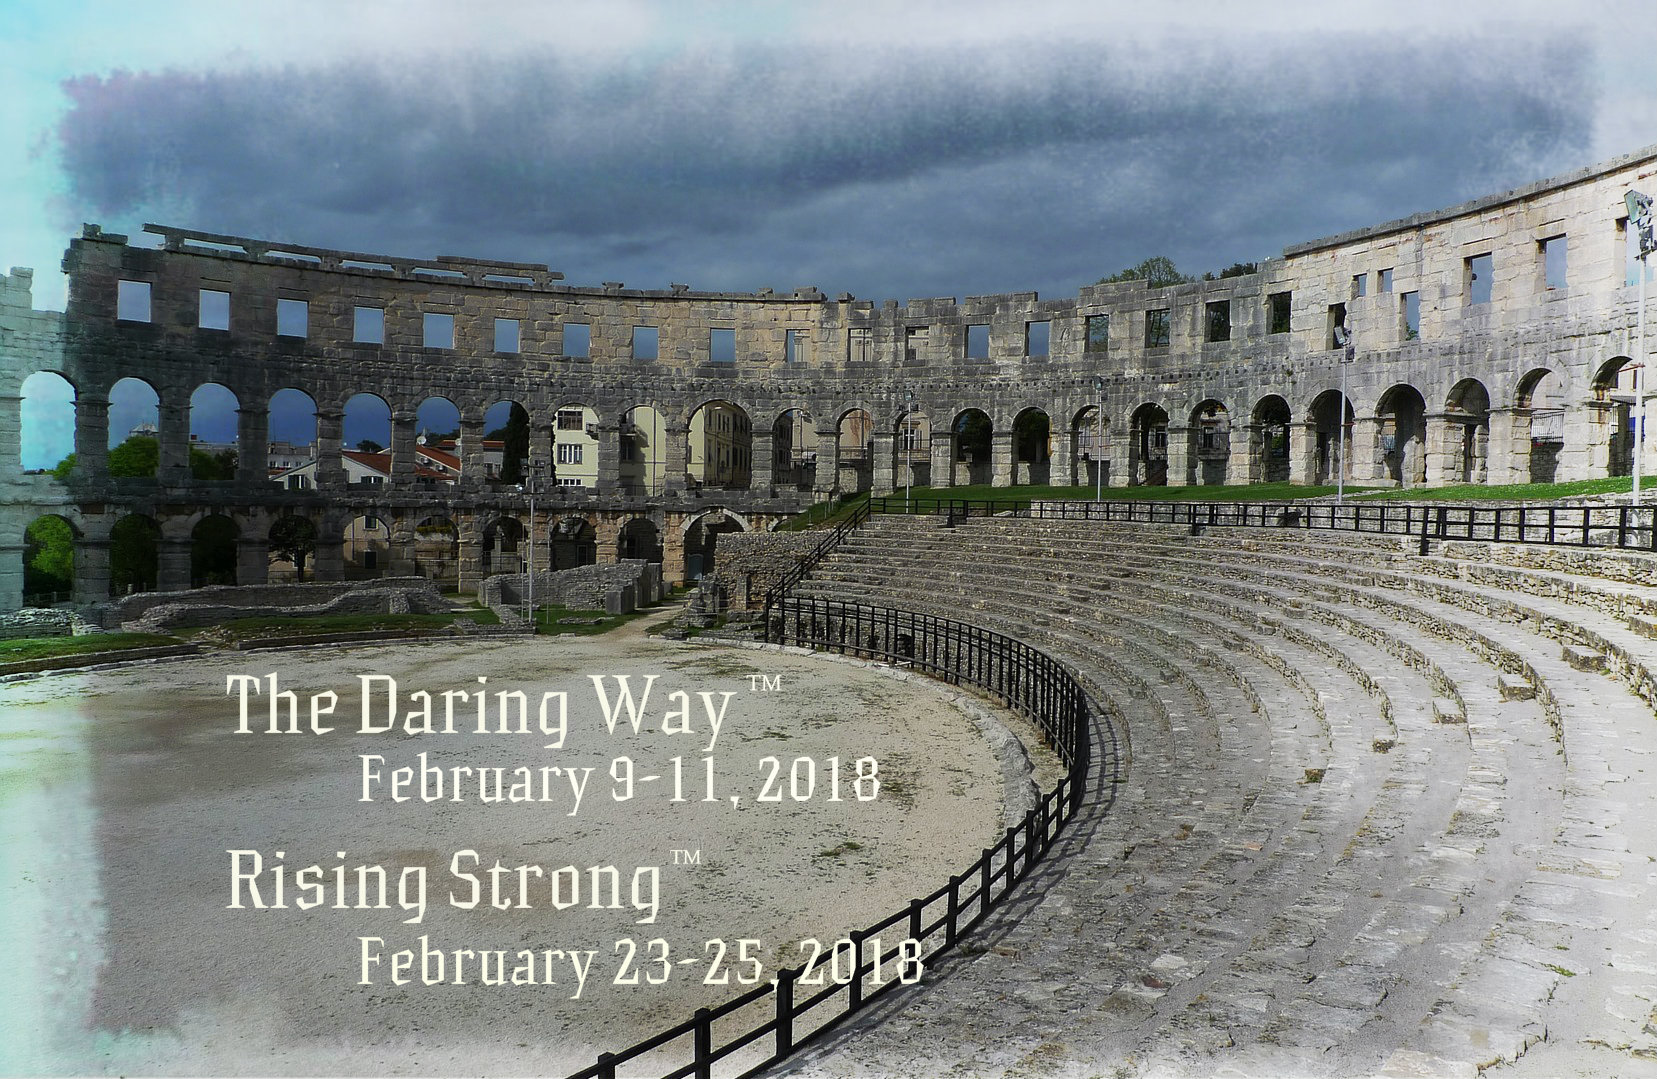 The Daring WAy™ and Rising Strong™ are being offered as weekend seminars in Winnipeg, Manitoba by certified Daring Way facilitator Carolyn Klassen of Conexus Counselling